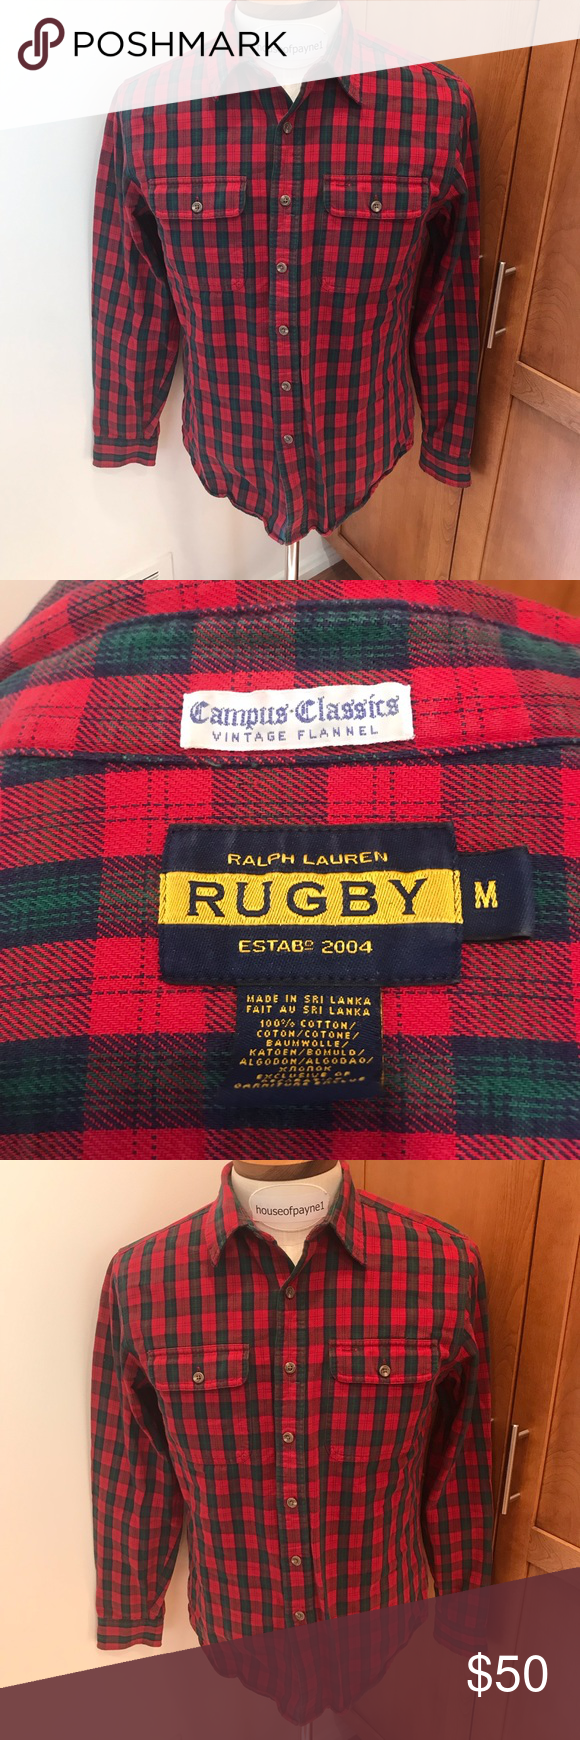 Ralph Lauren Rugby Collection M Flannel Red Ralph Lauren Rugby Collection Rn 41381 Vintage Flannel Medium M Vintage Flannel Casual Button Down Shirts Flannel